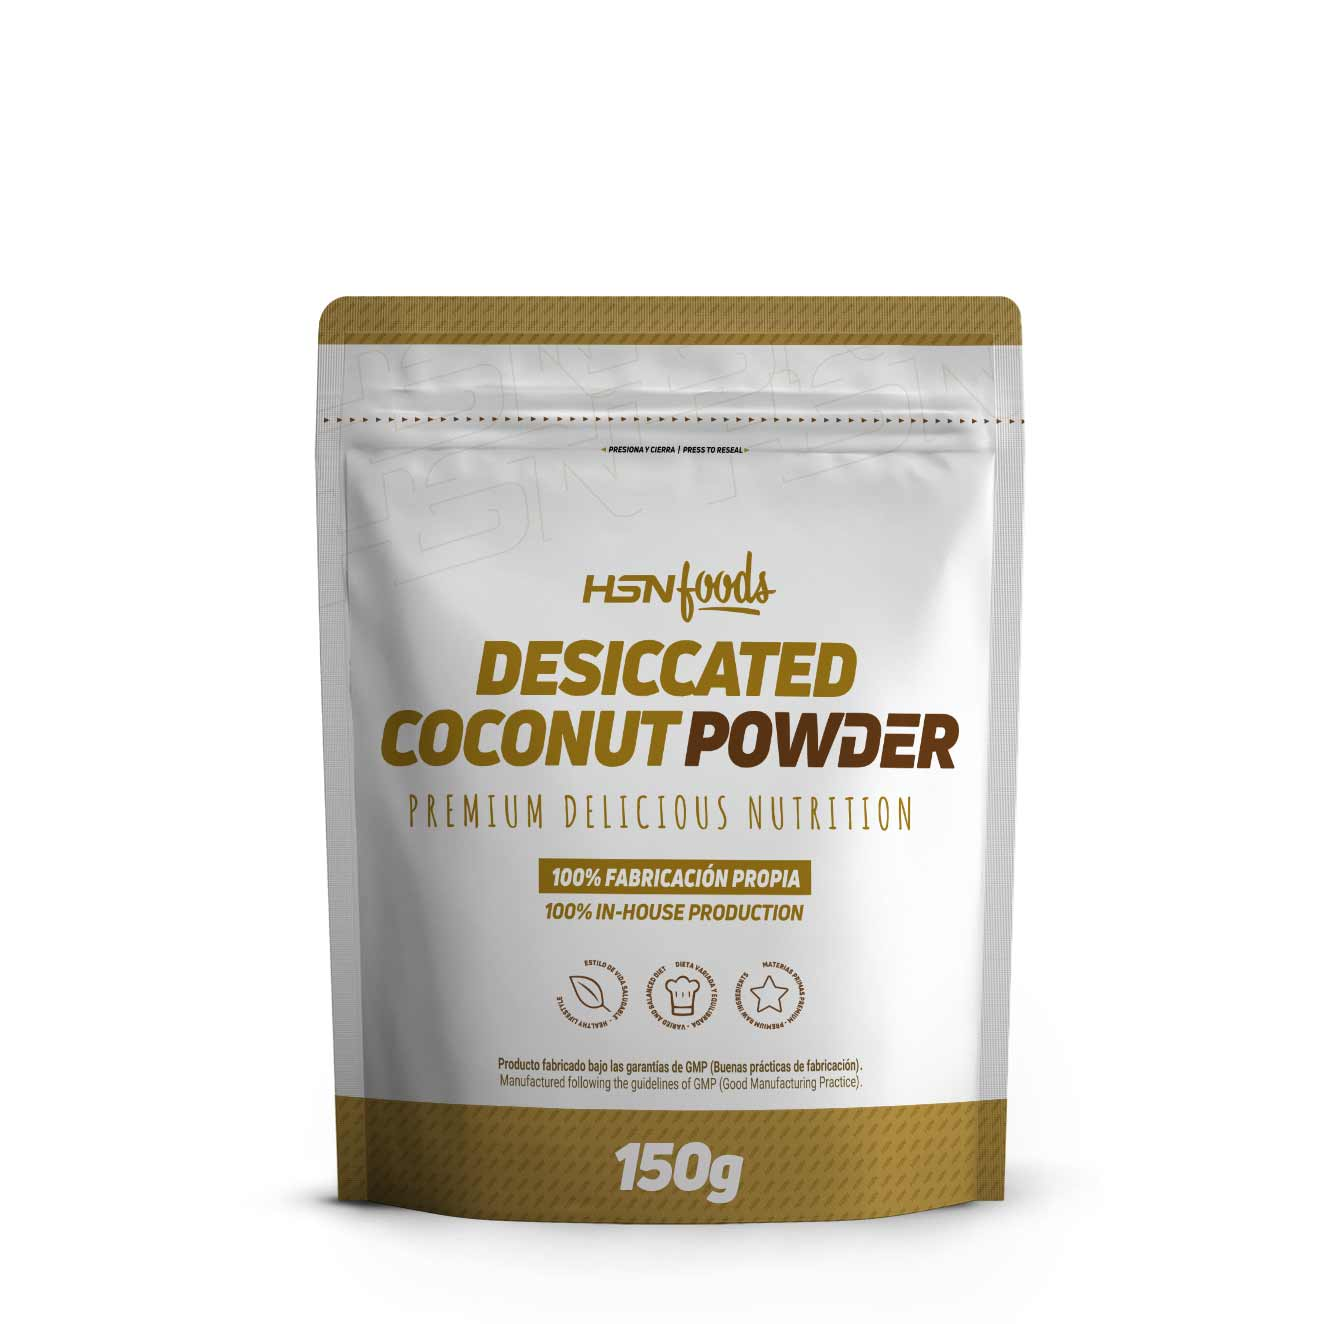 DESICCATED COCONUT POWDER 150g